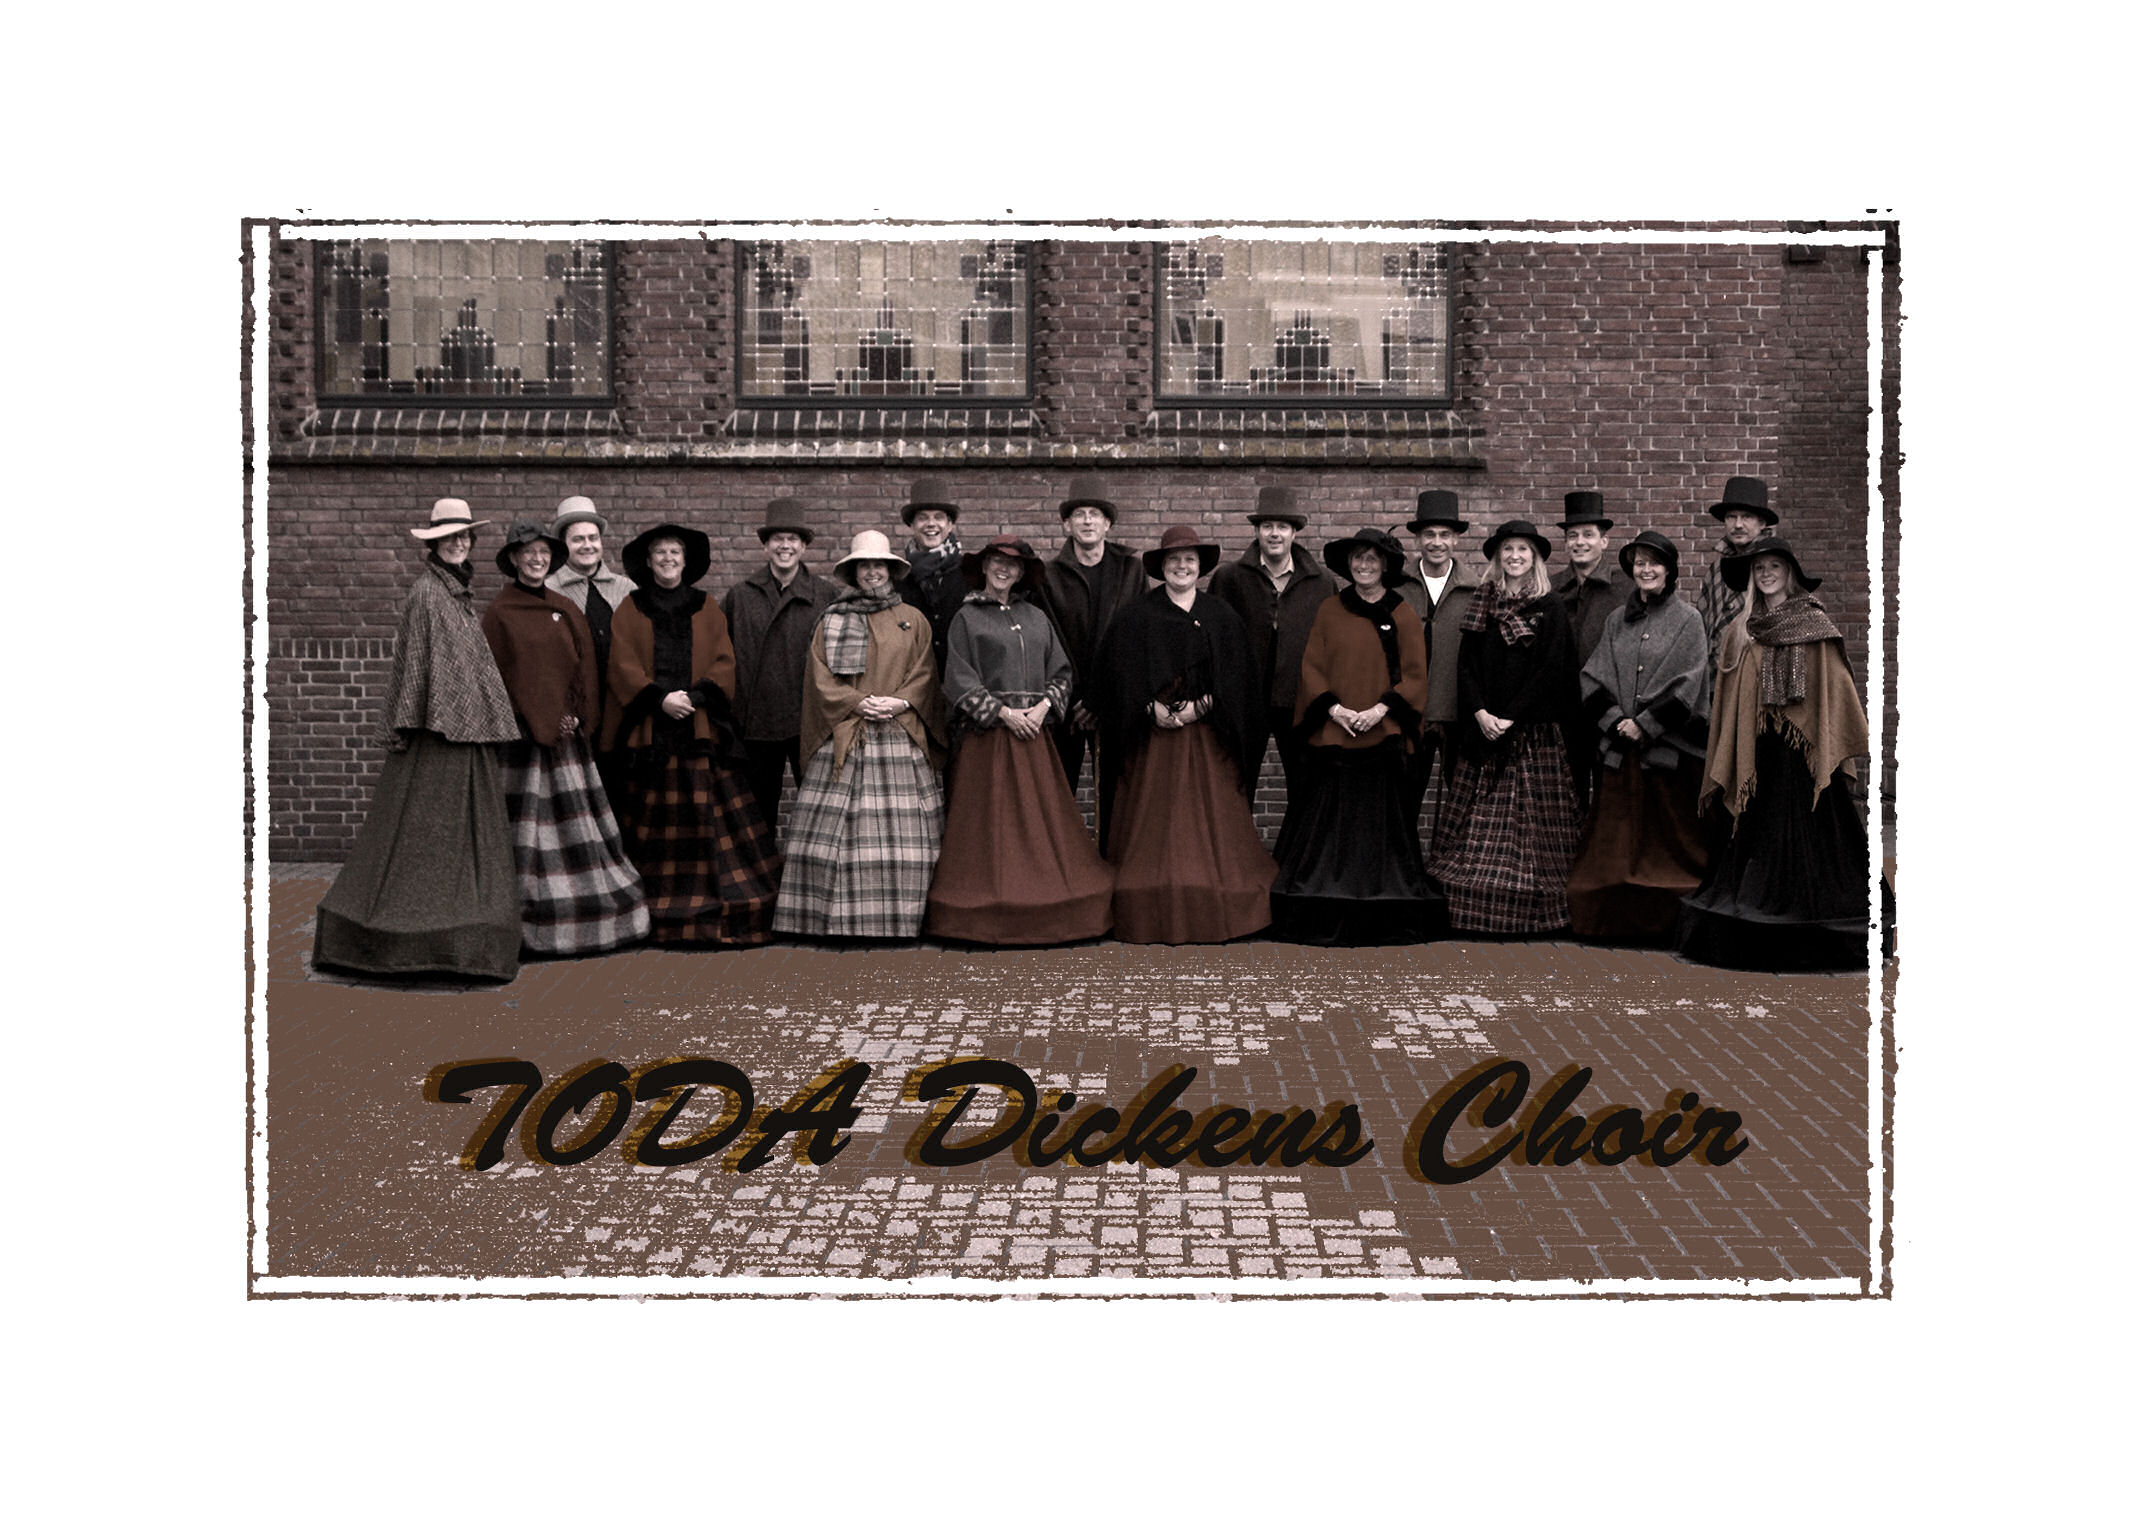 toda-dickens-choir-03.jpg